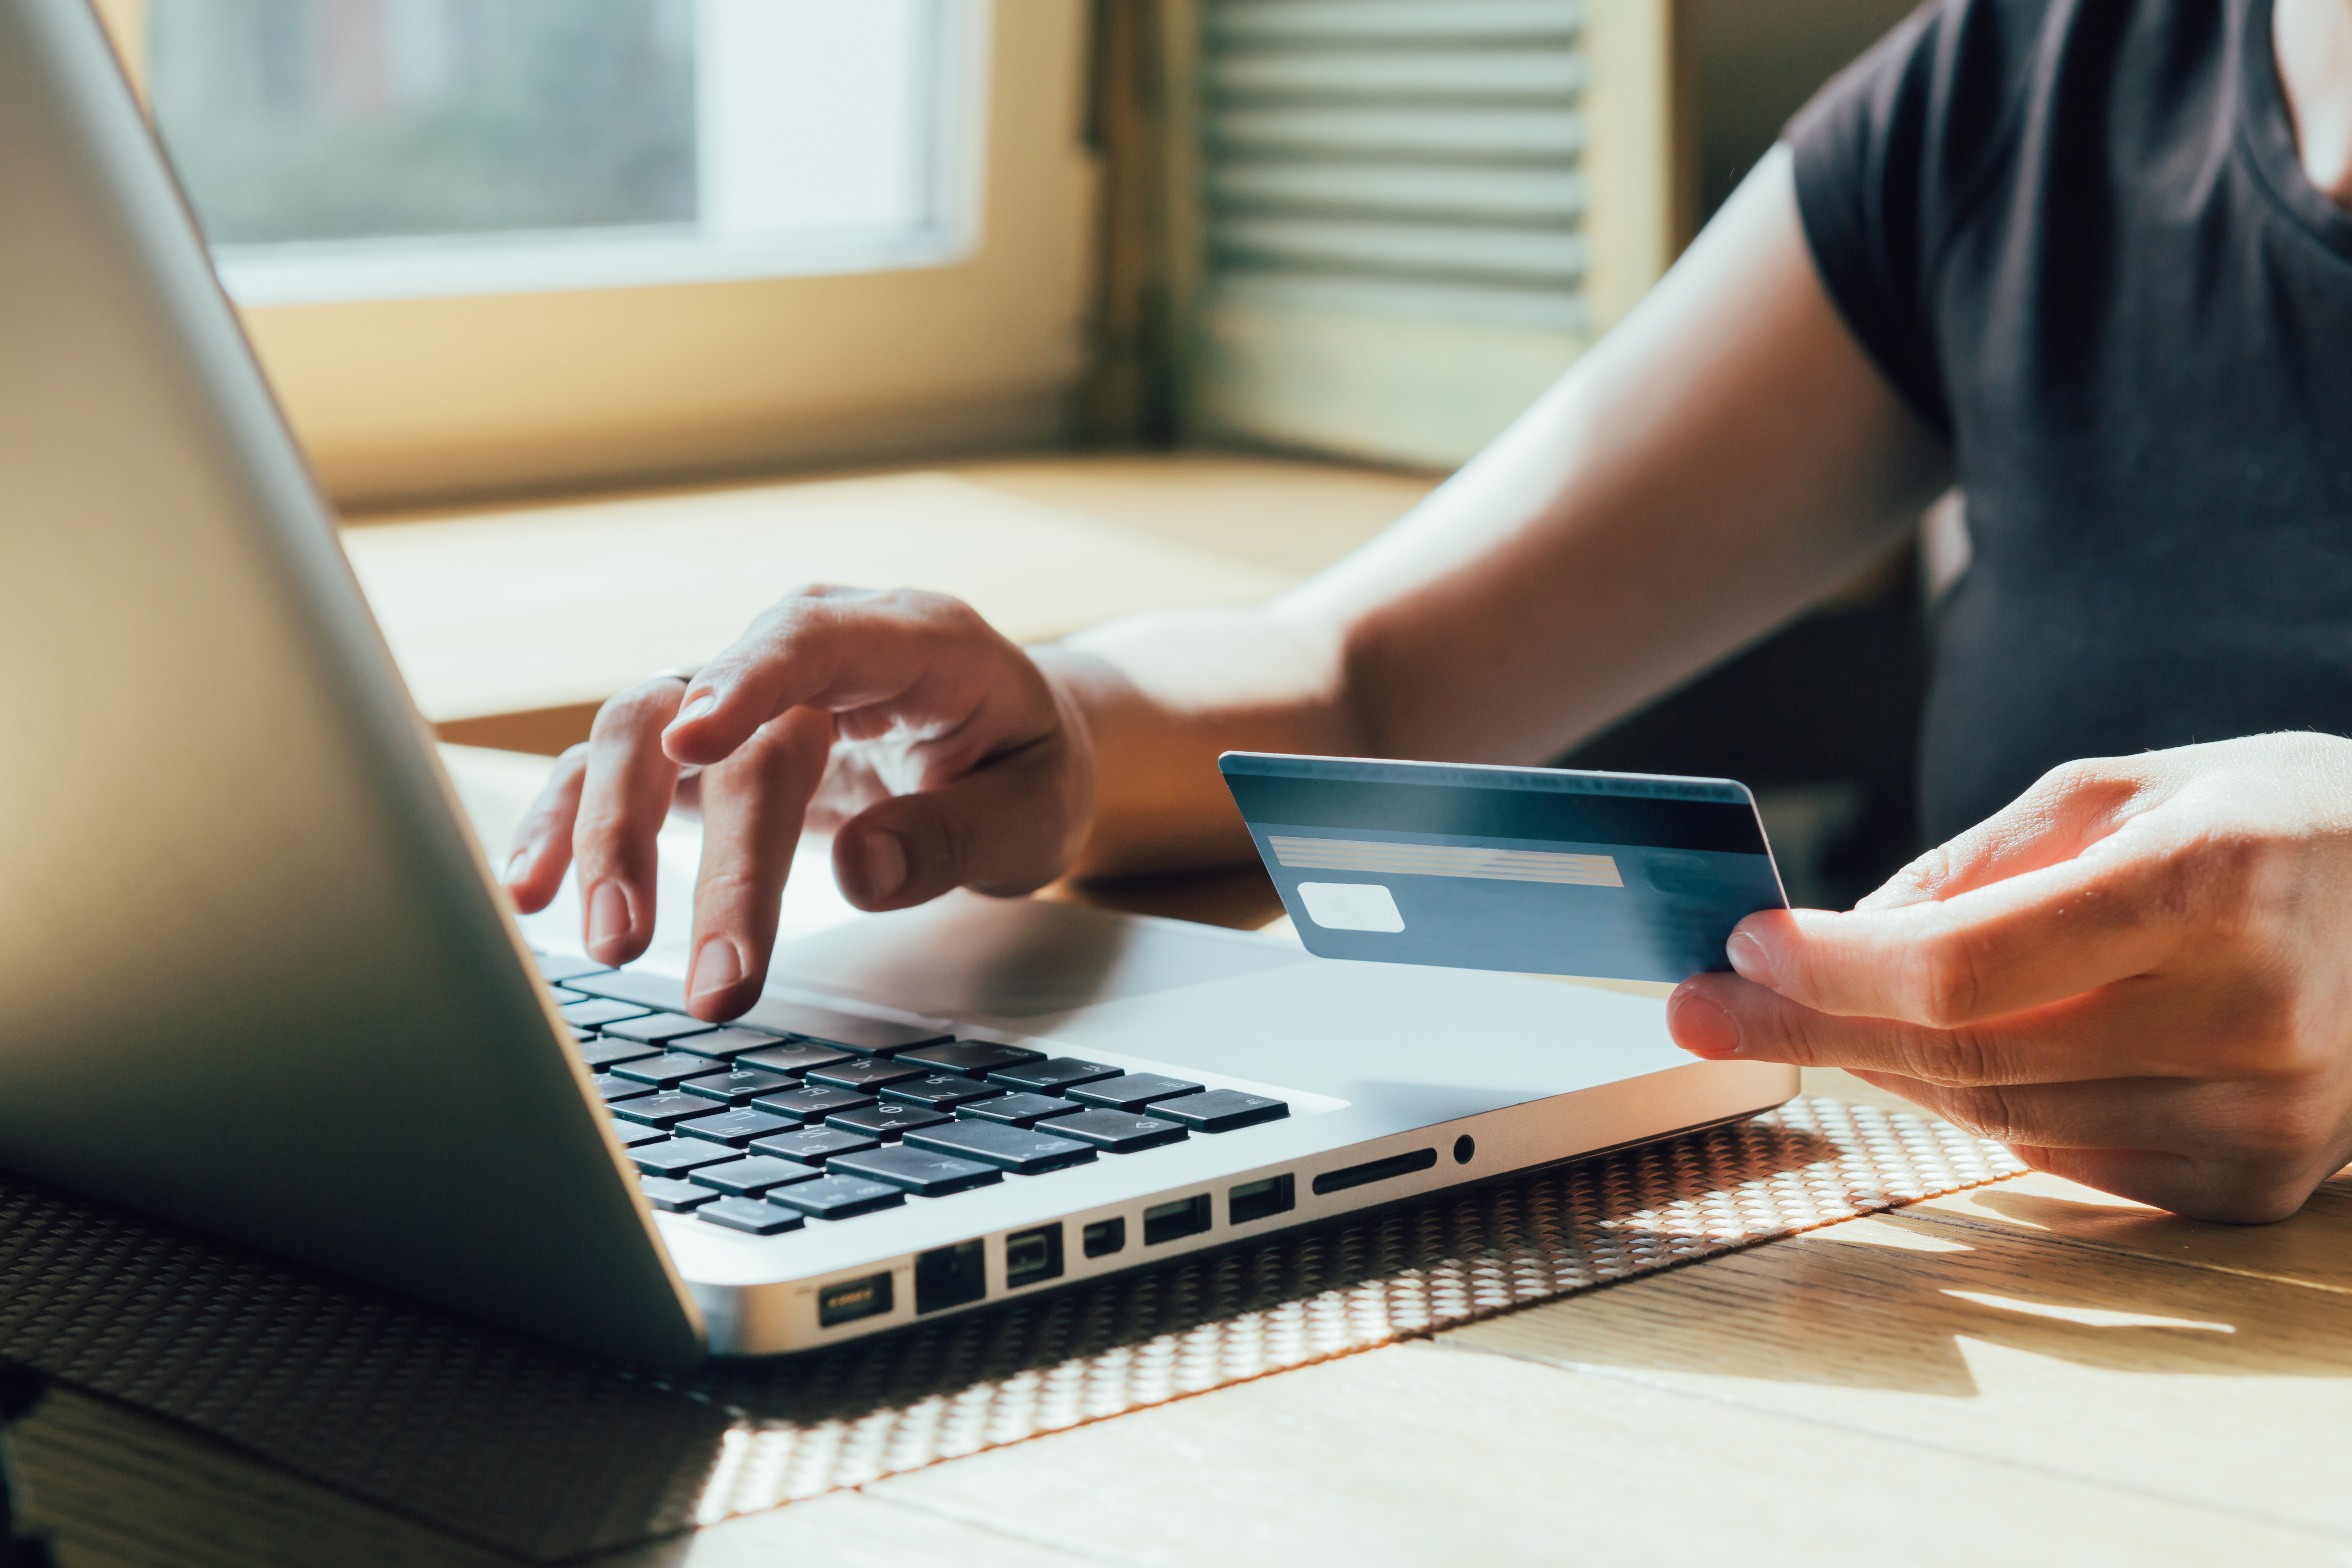 Are Remote Payments on the Rise?